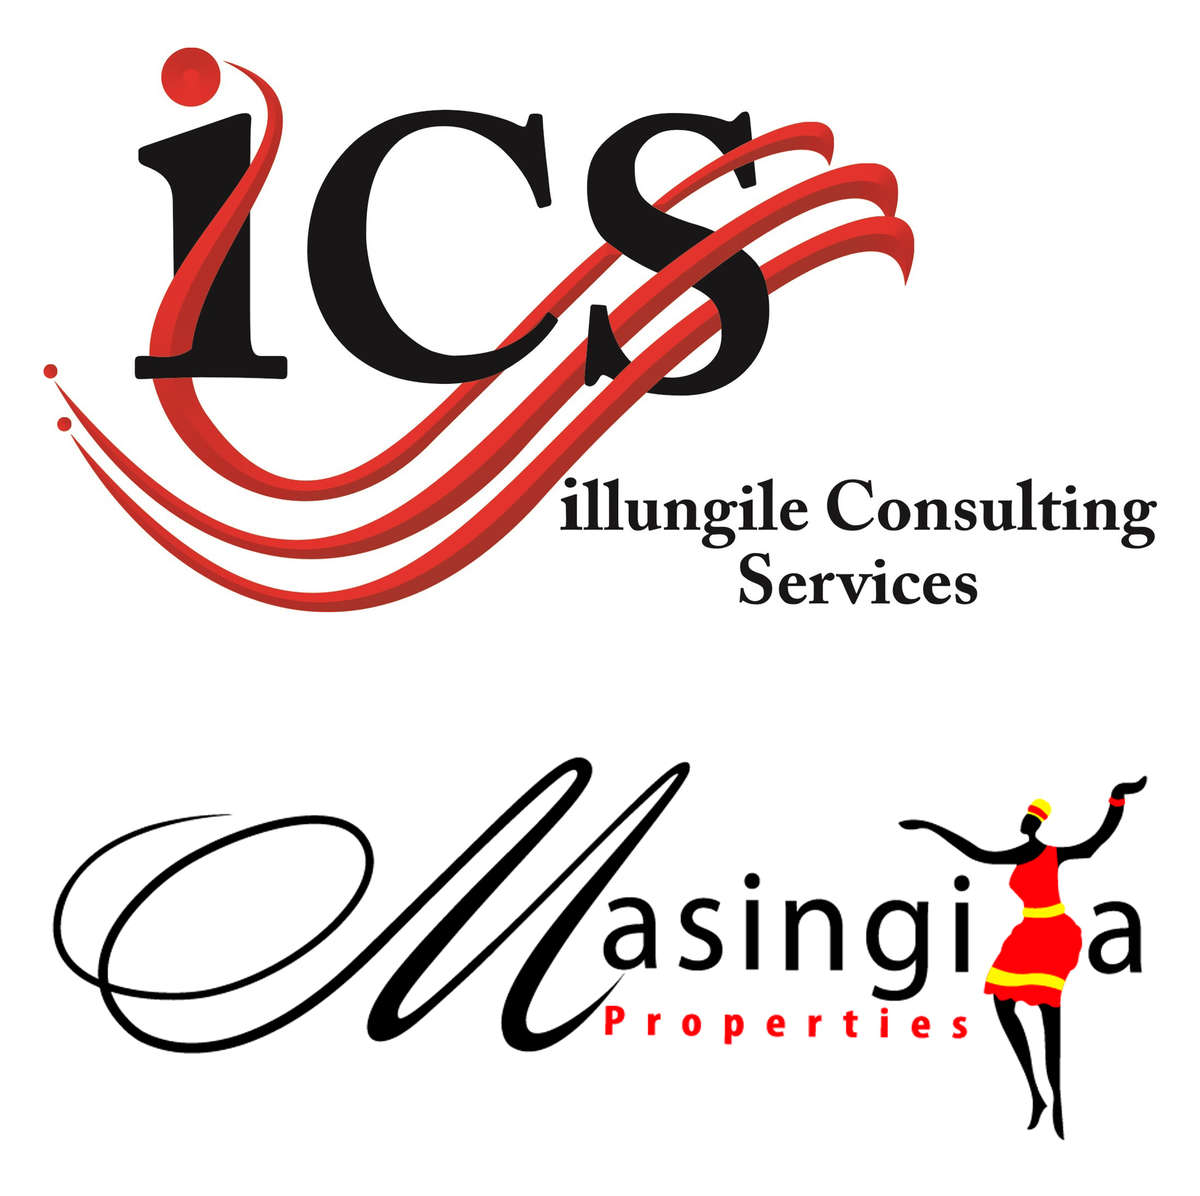 Illungile Consulting Services